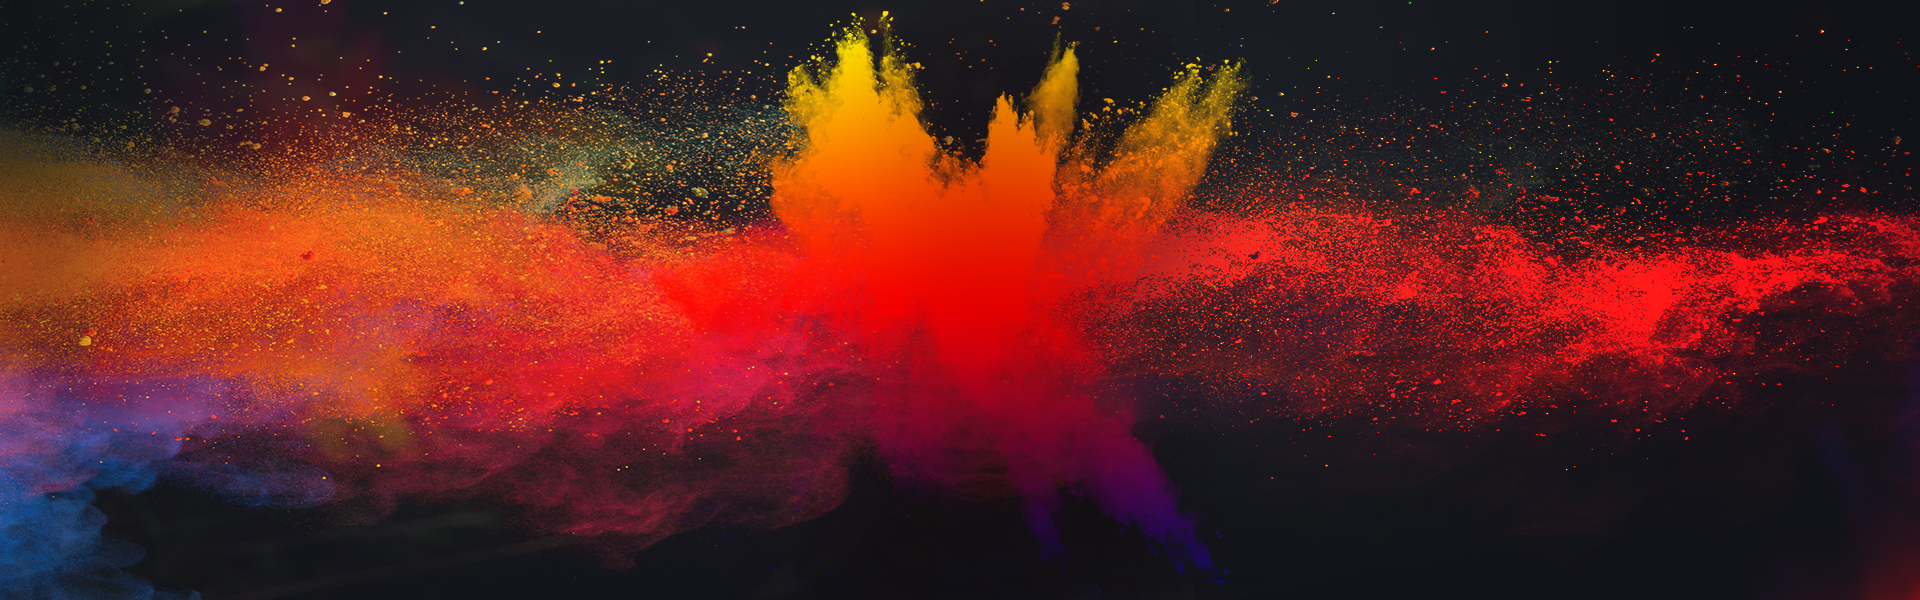 background color explosion  color  explosion  powder background image for free download